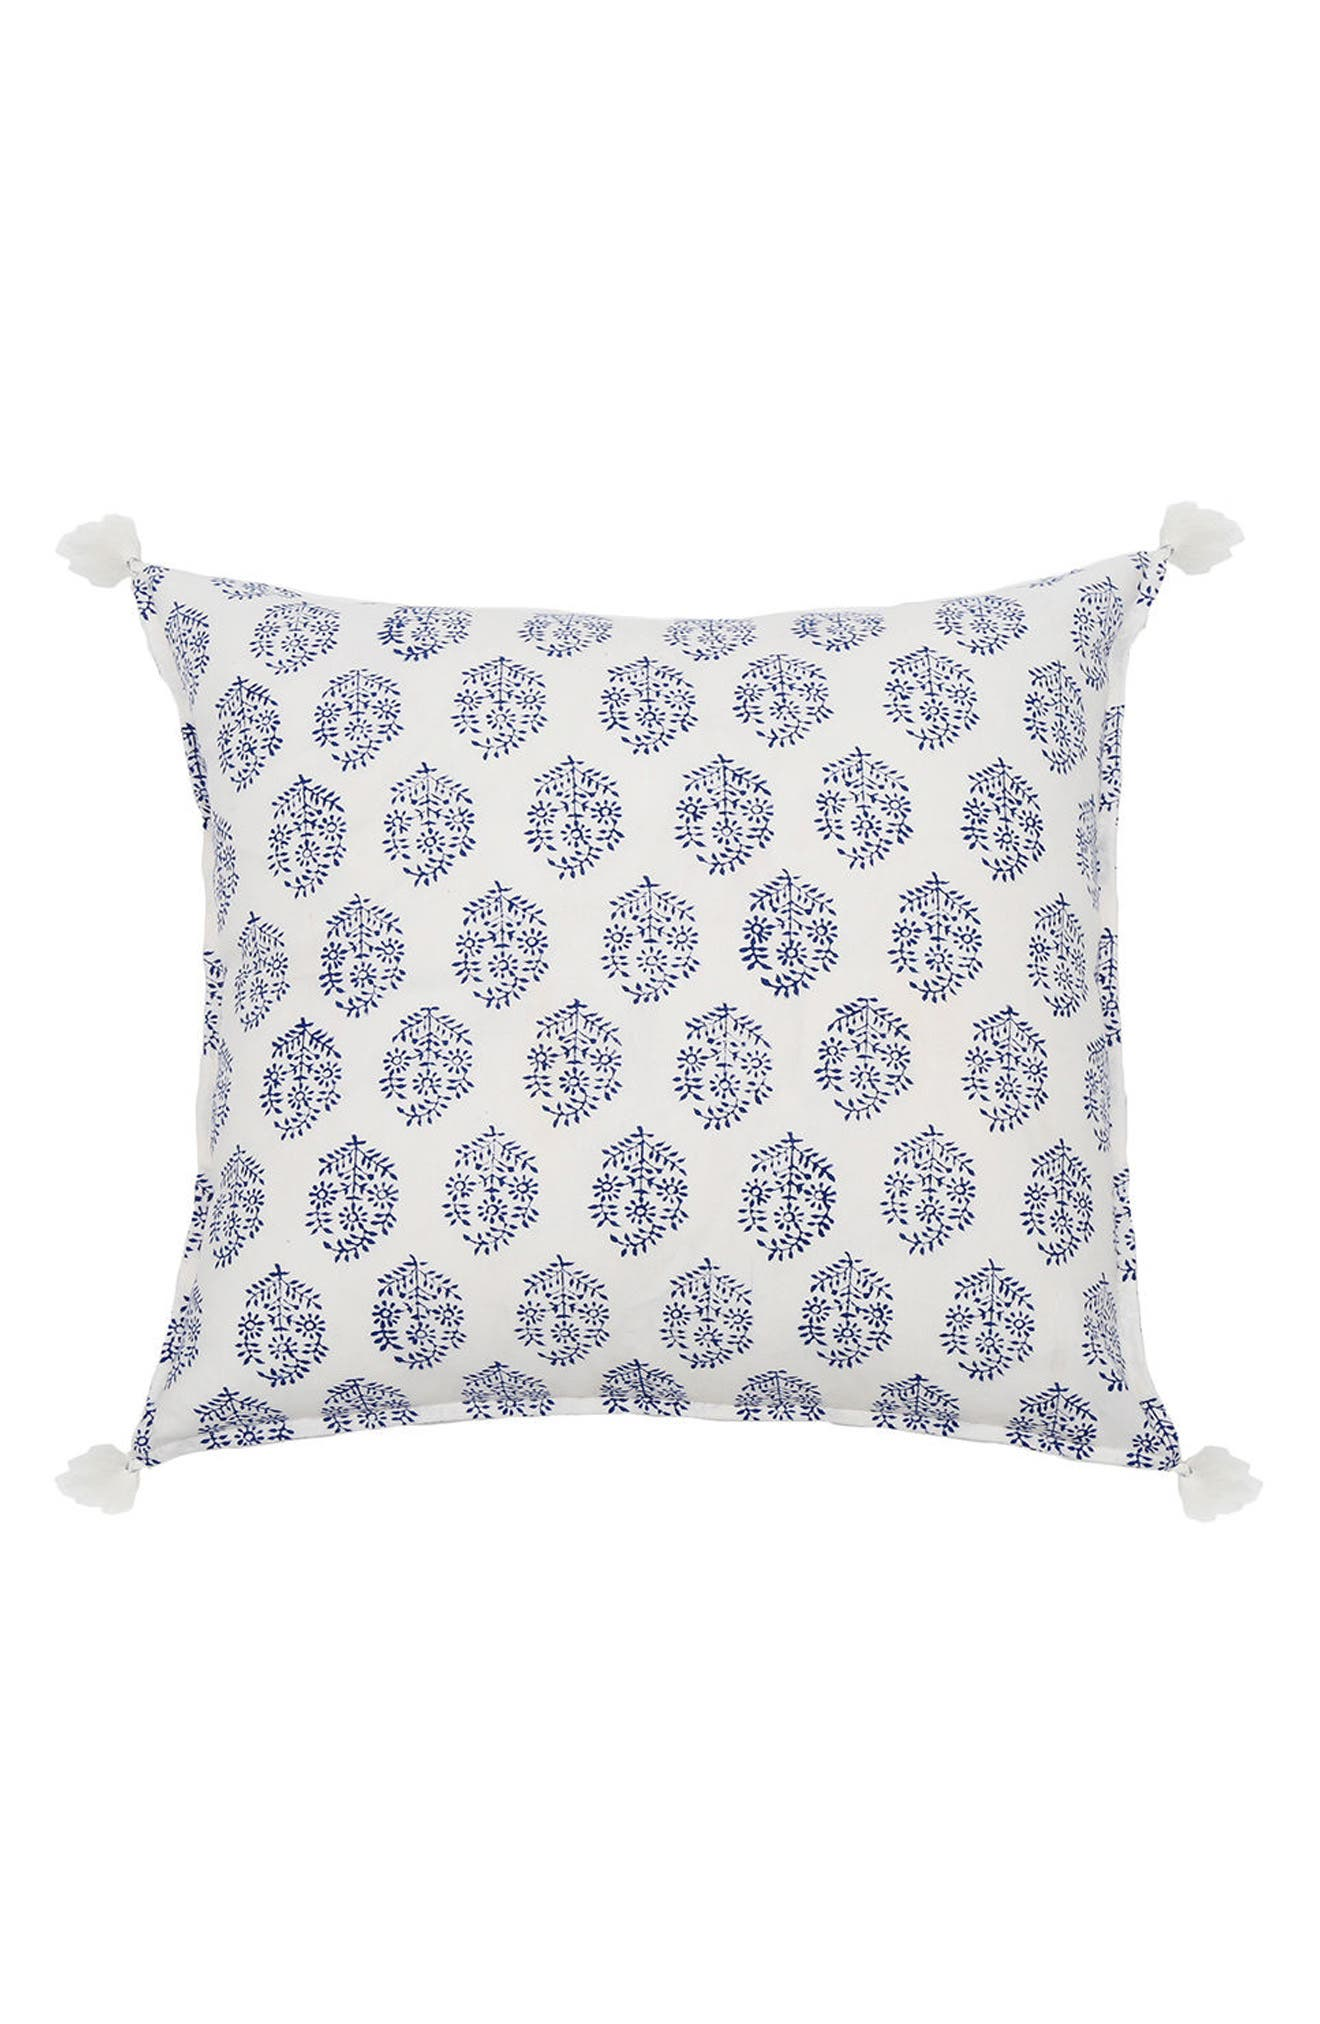 Pom Pom at Home Fena Accent Pillow